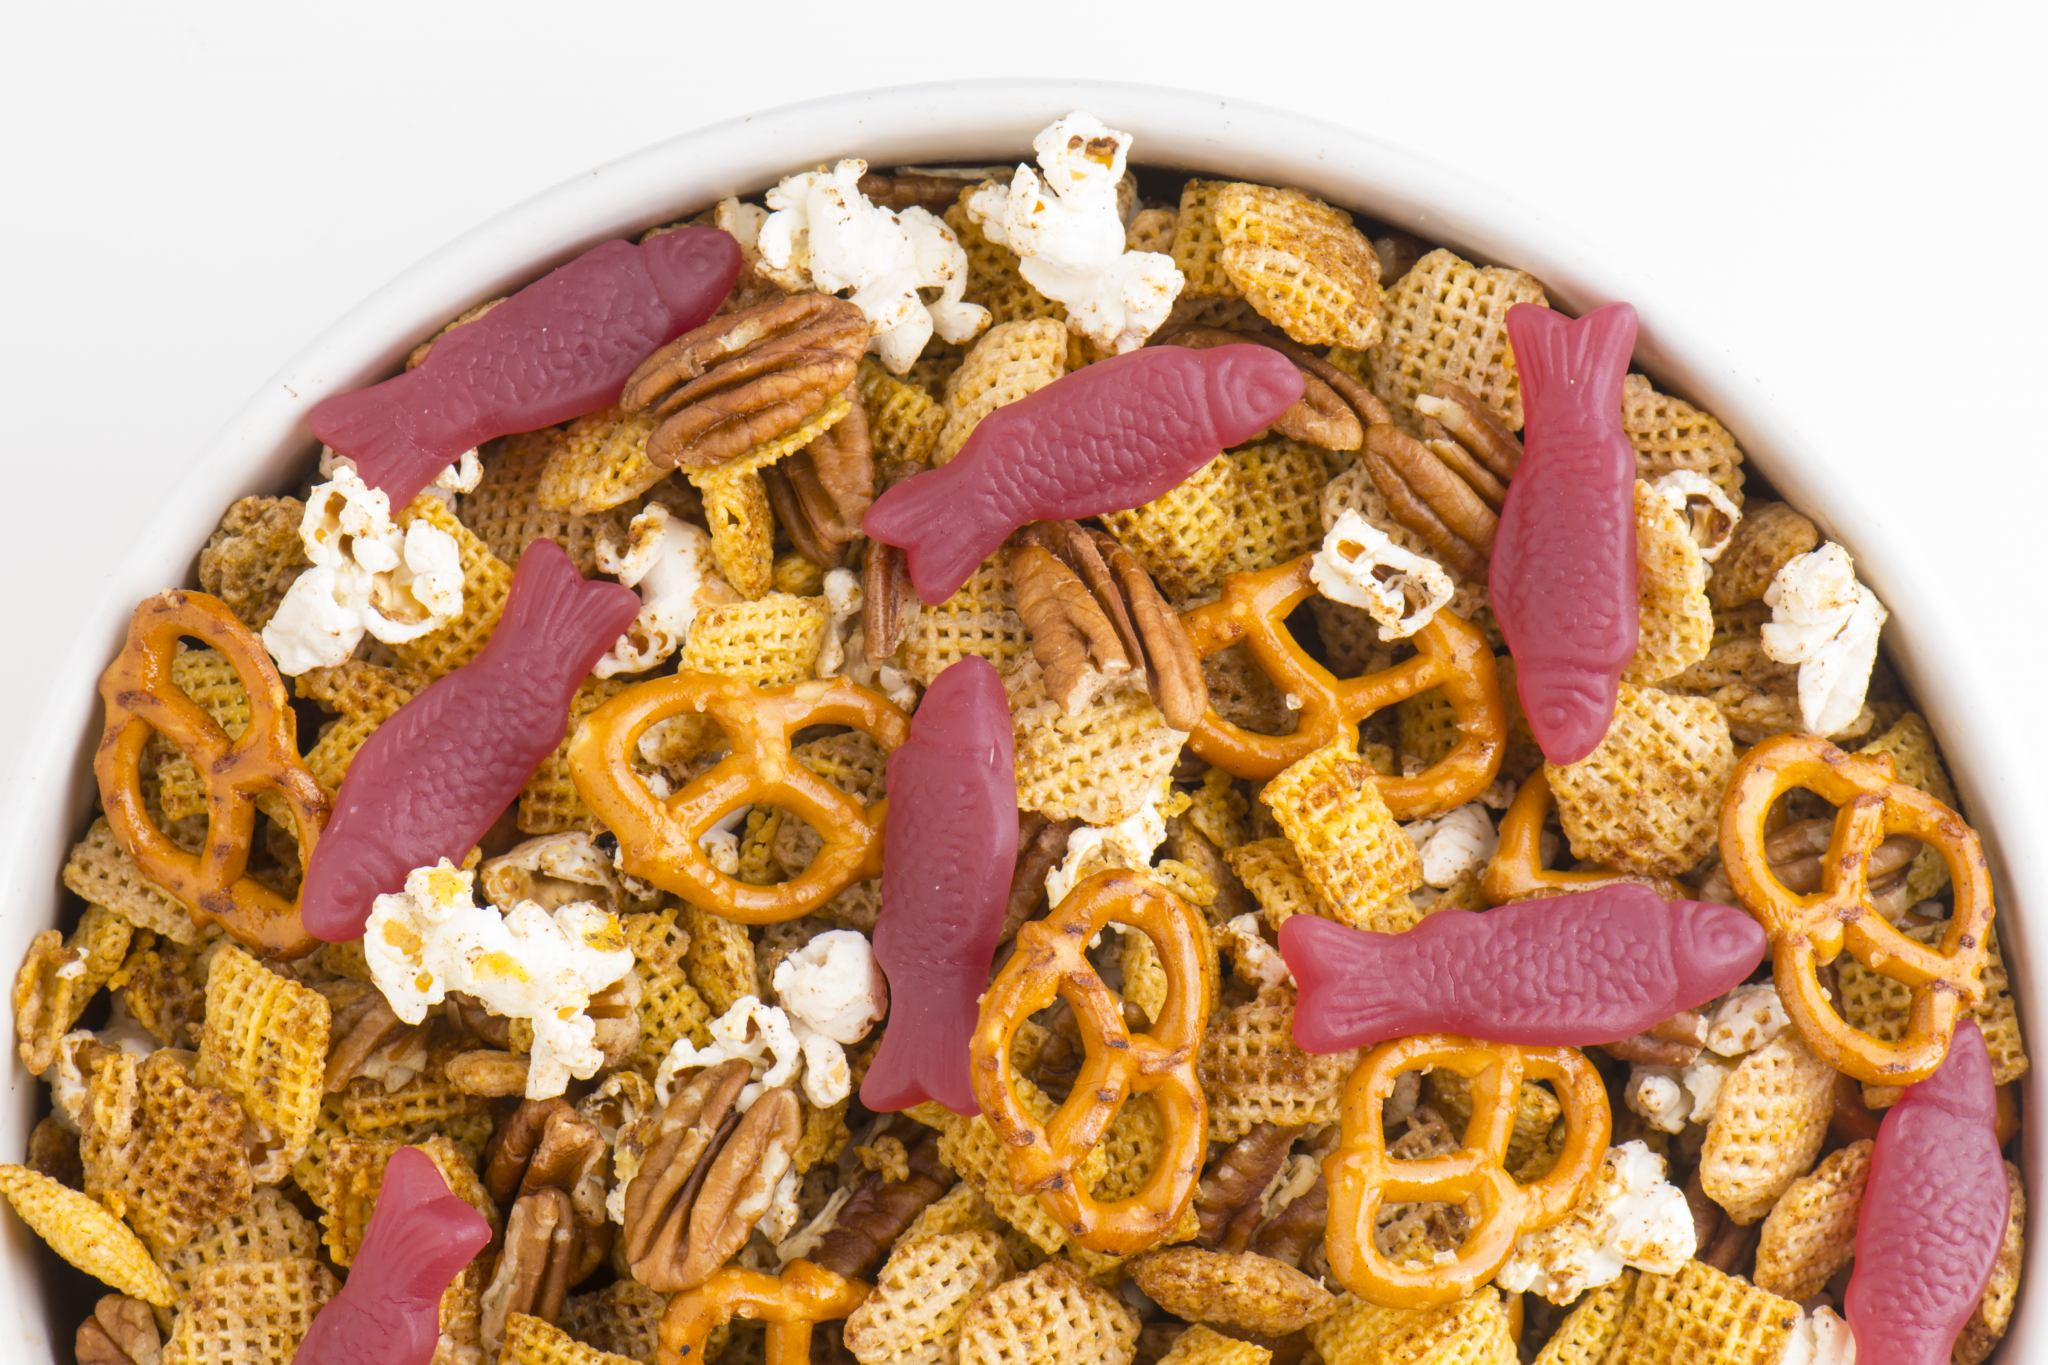 Turn your traditional snack mix on its ear with thisVegan Pumpkin Spice Snack Mix, made with your favorite chex cereal, pretzels, pecans, pumpkin pie spices, and delicious, organic Wholesome Candies!